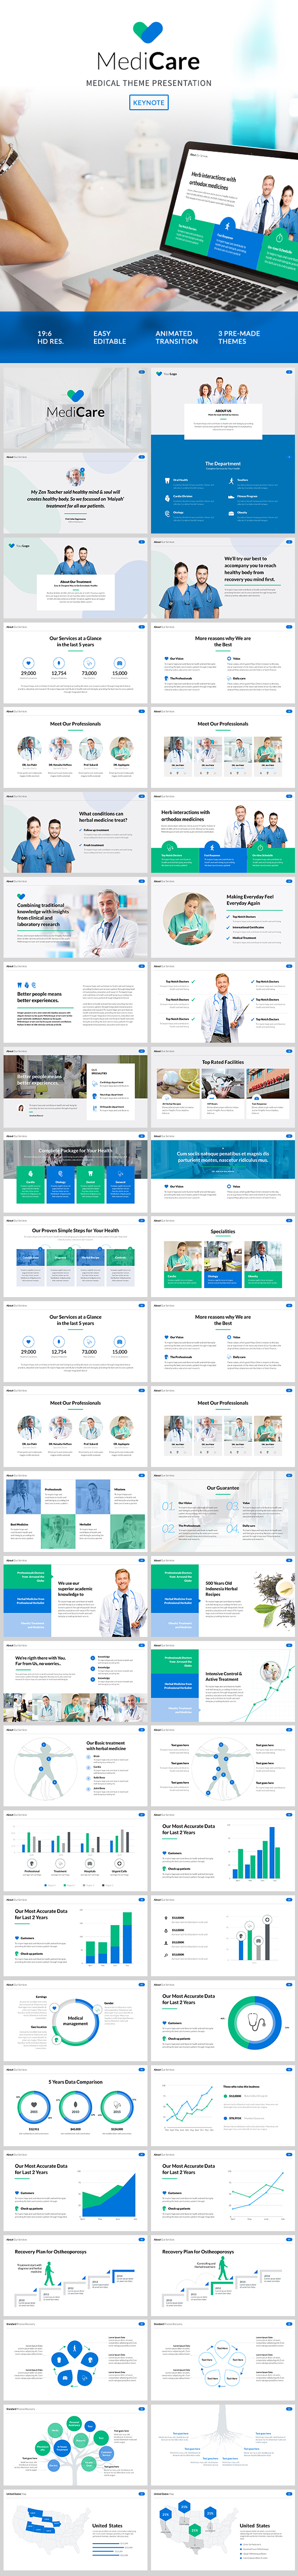 MediCare - Medical Theme Keynote Template - Keynote Templates Presentation Templates